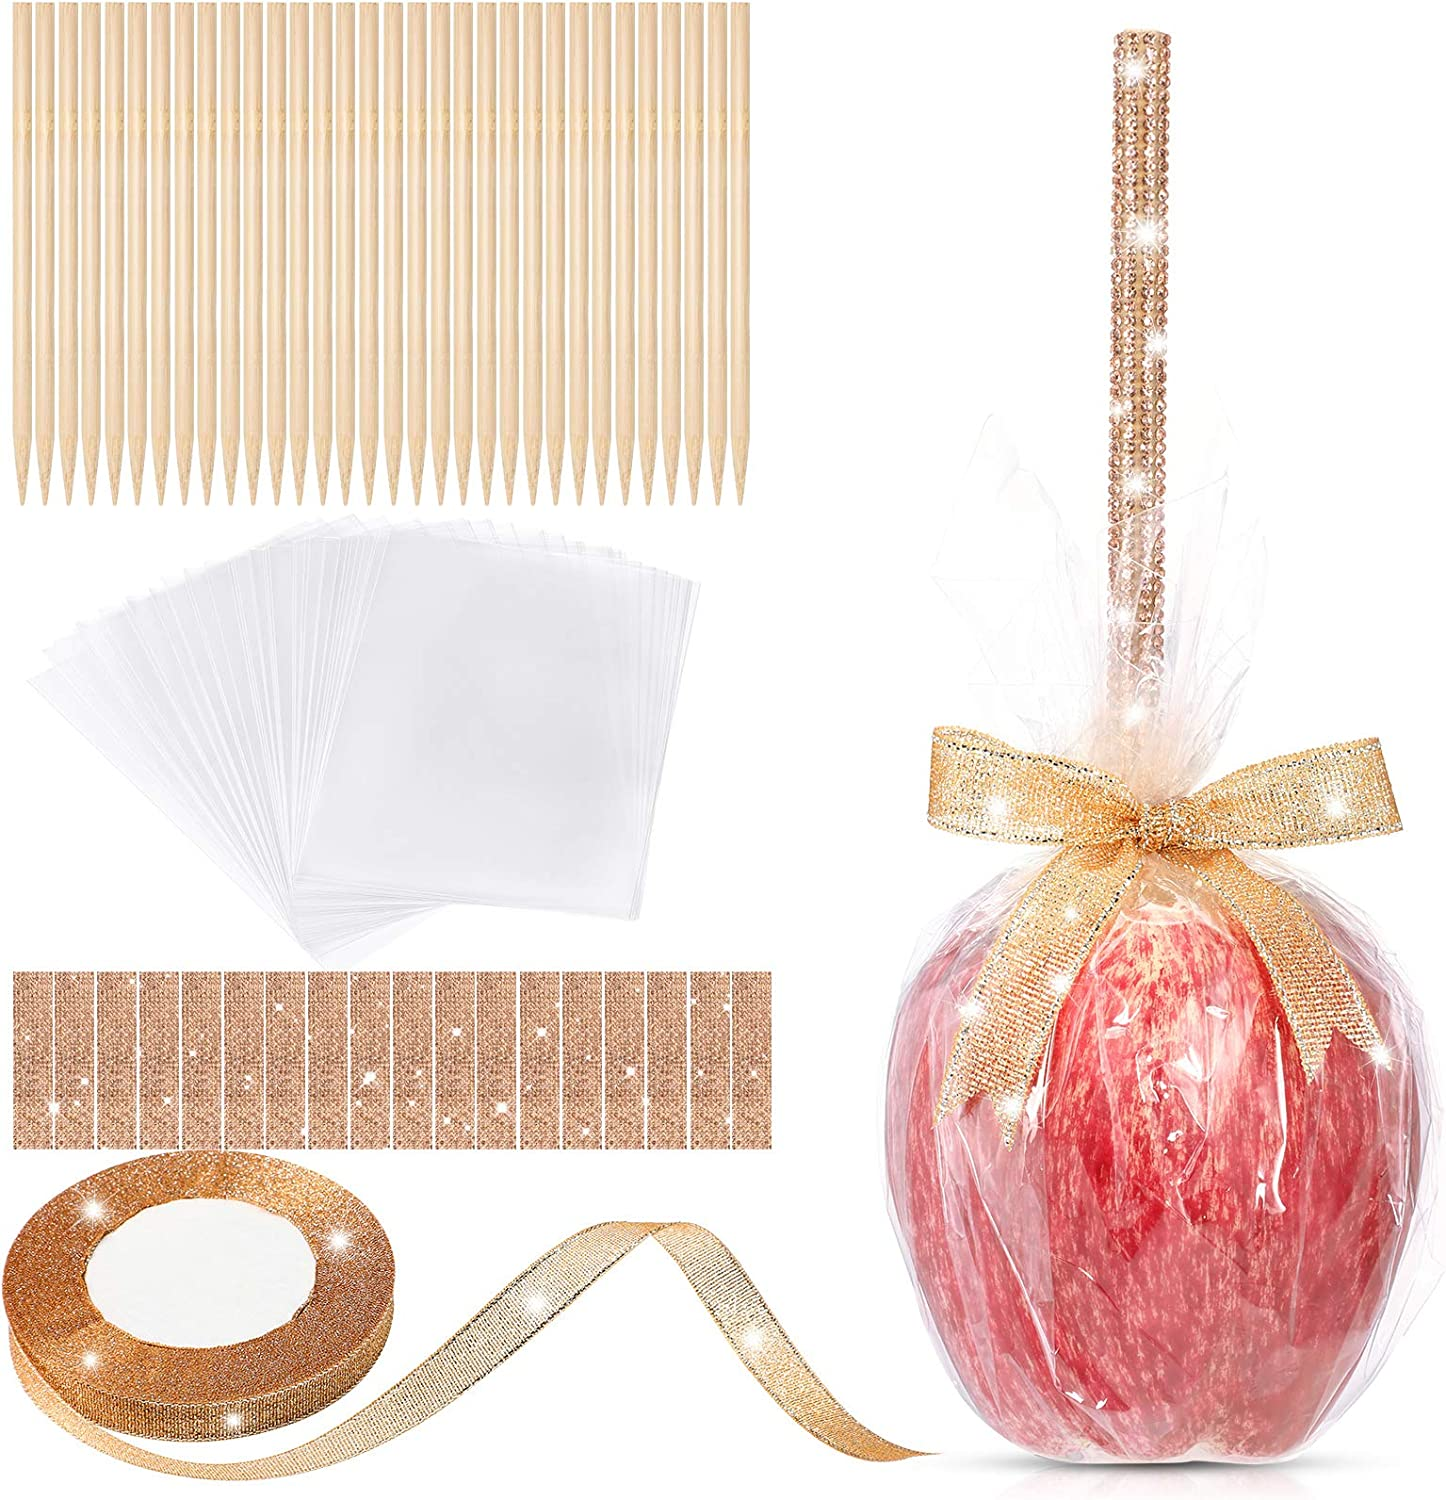 36 Pieces Bamboo Candy Sticks 5 Inch, 36 Bling Rhinestone Decoration Sticker, 36 Candy Glass Paper, 1 Roll 25 Yard Glitter Ribbon, 109 Pieces Candy Making Accessory for Candy Making (Champaign Gold)